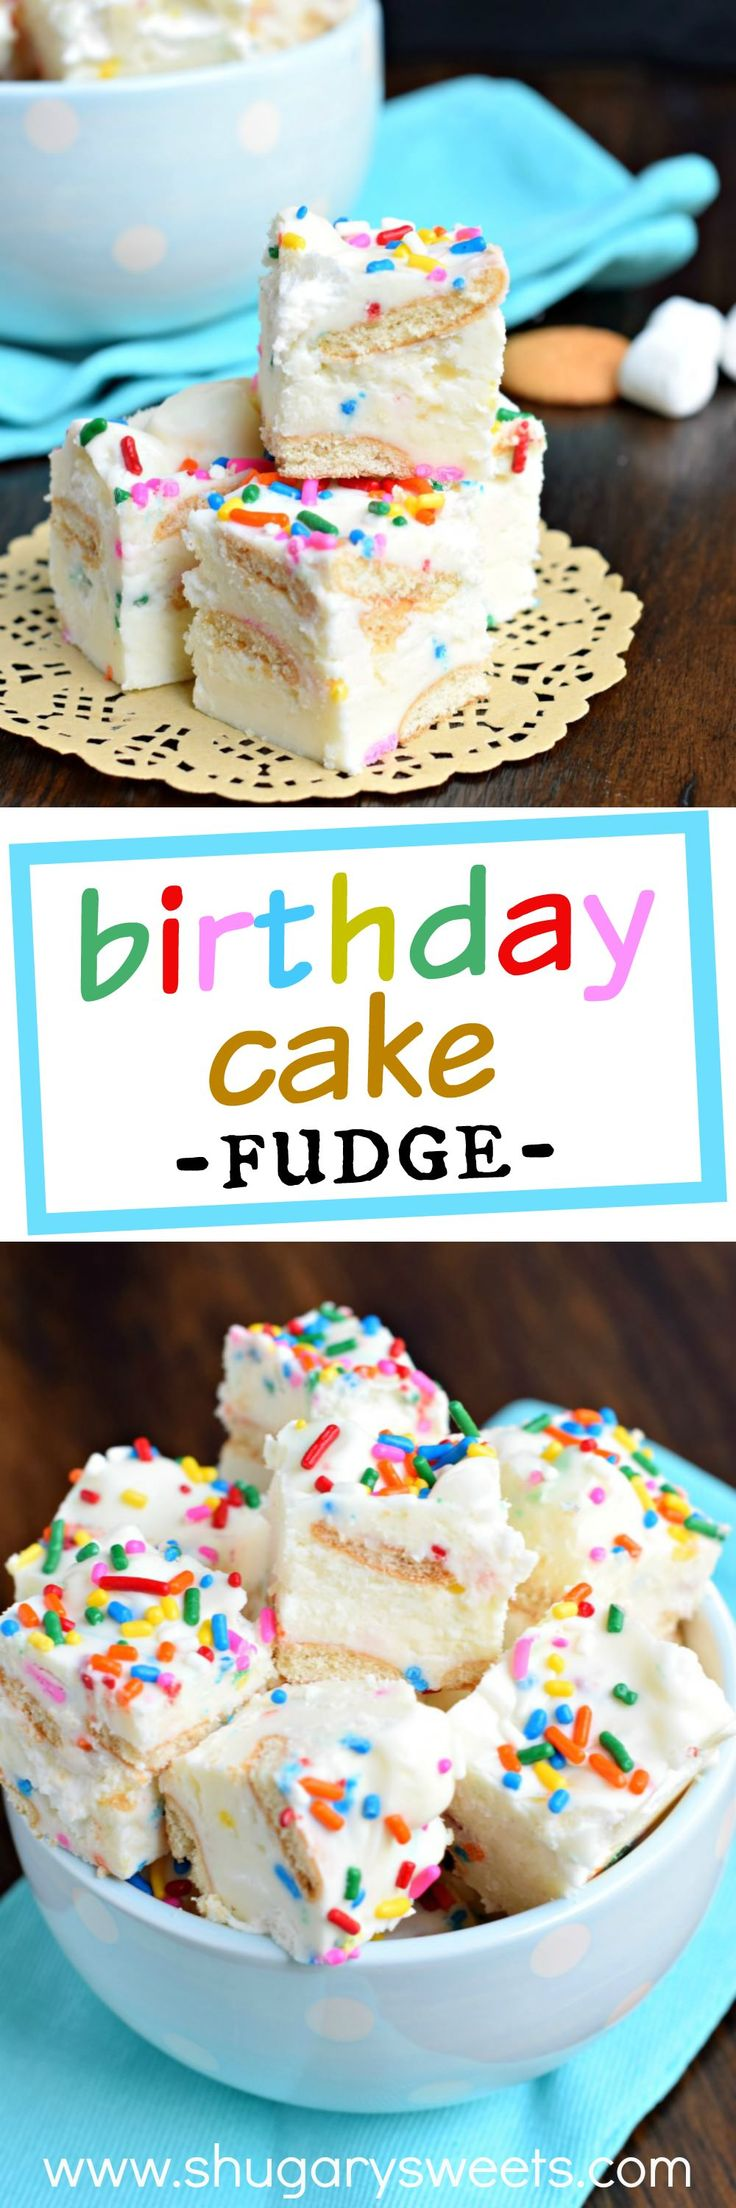 Birthday Cake Fudge is a fun, festive Disney inspired treat. Packed with…